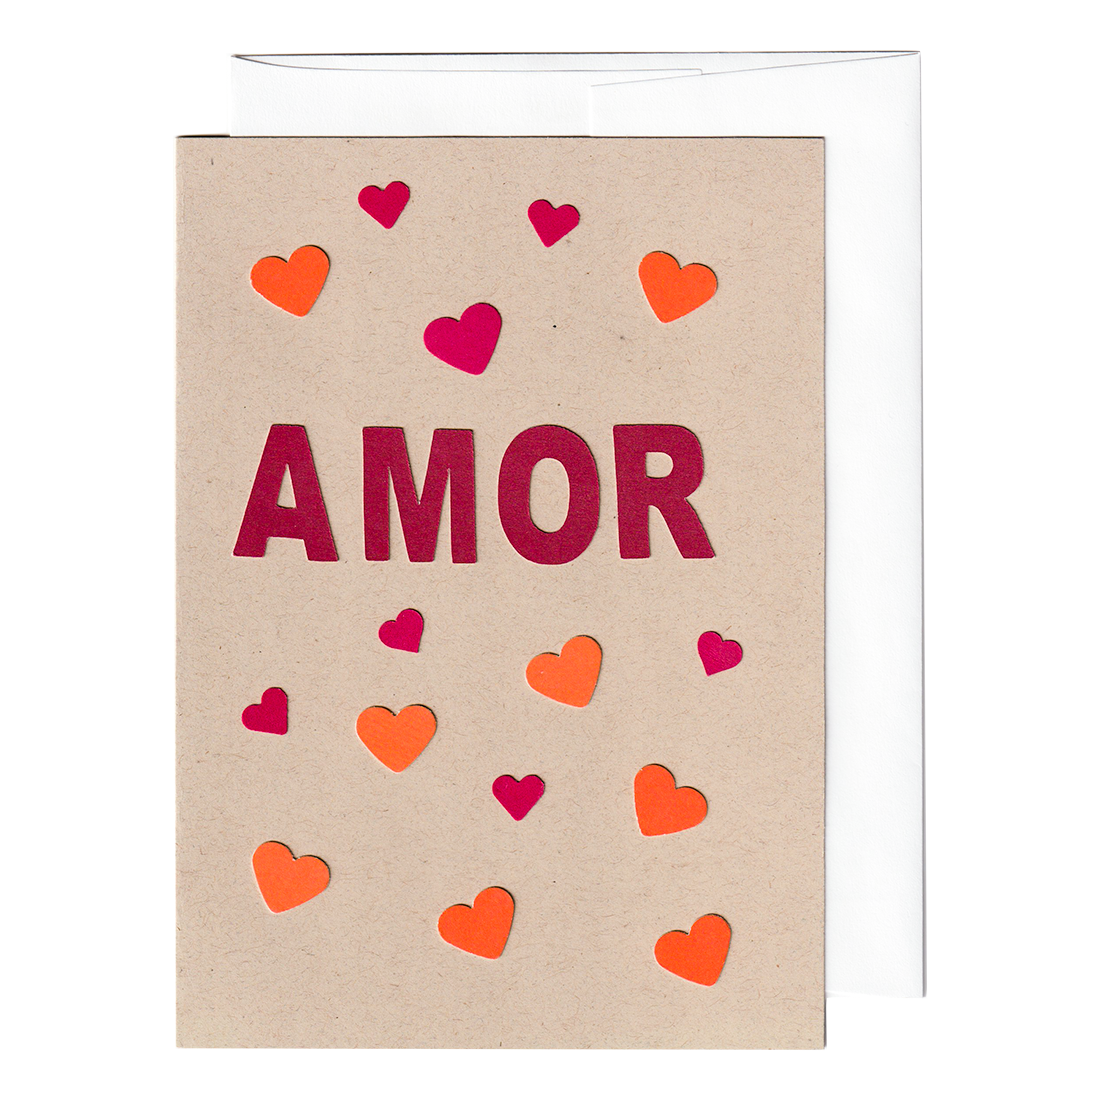 Amor with hearts handmade cut paper card